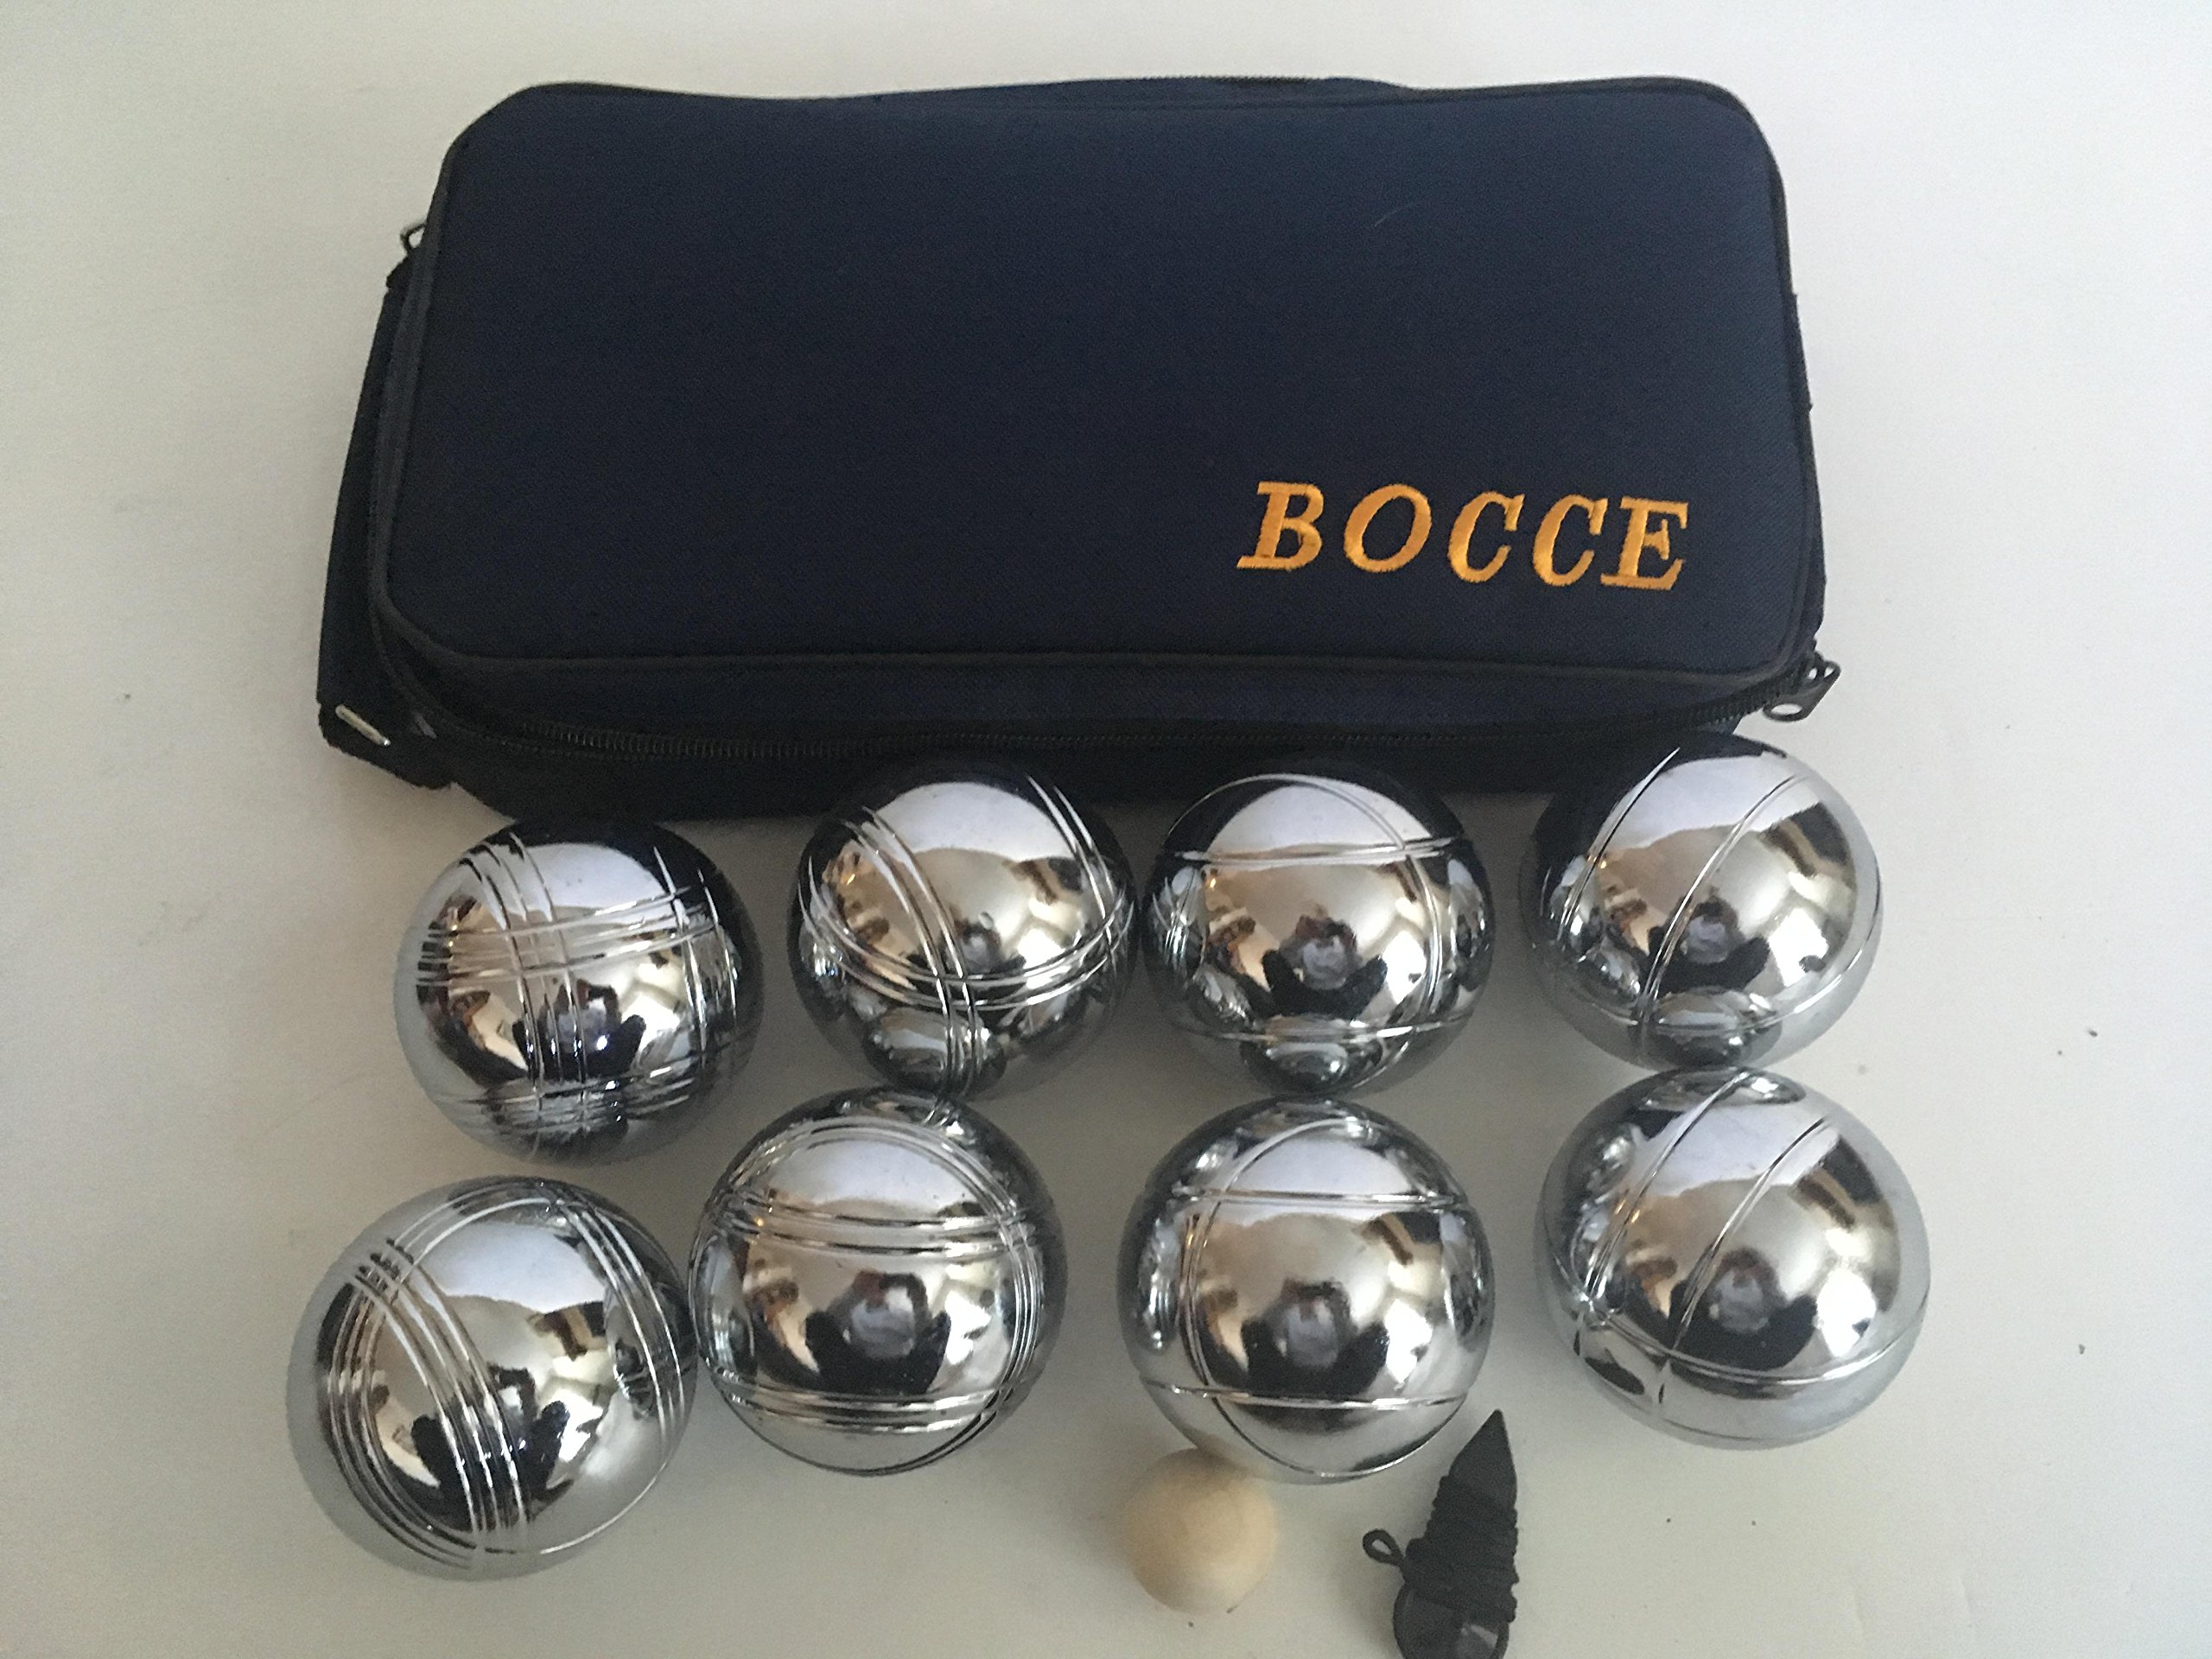 73mm Metal Bocce/Petanque Set with 8 Silver balls and blue bag - single